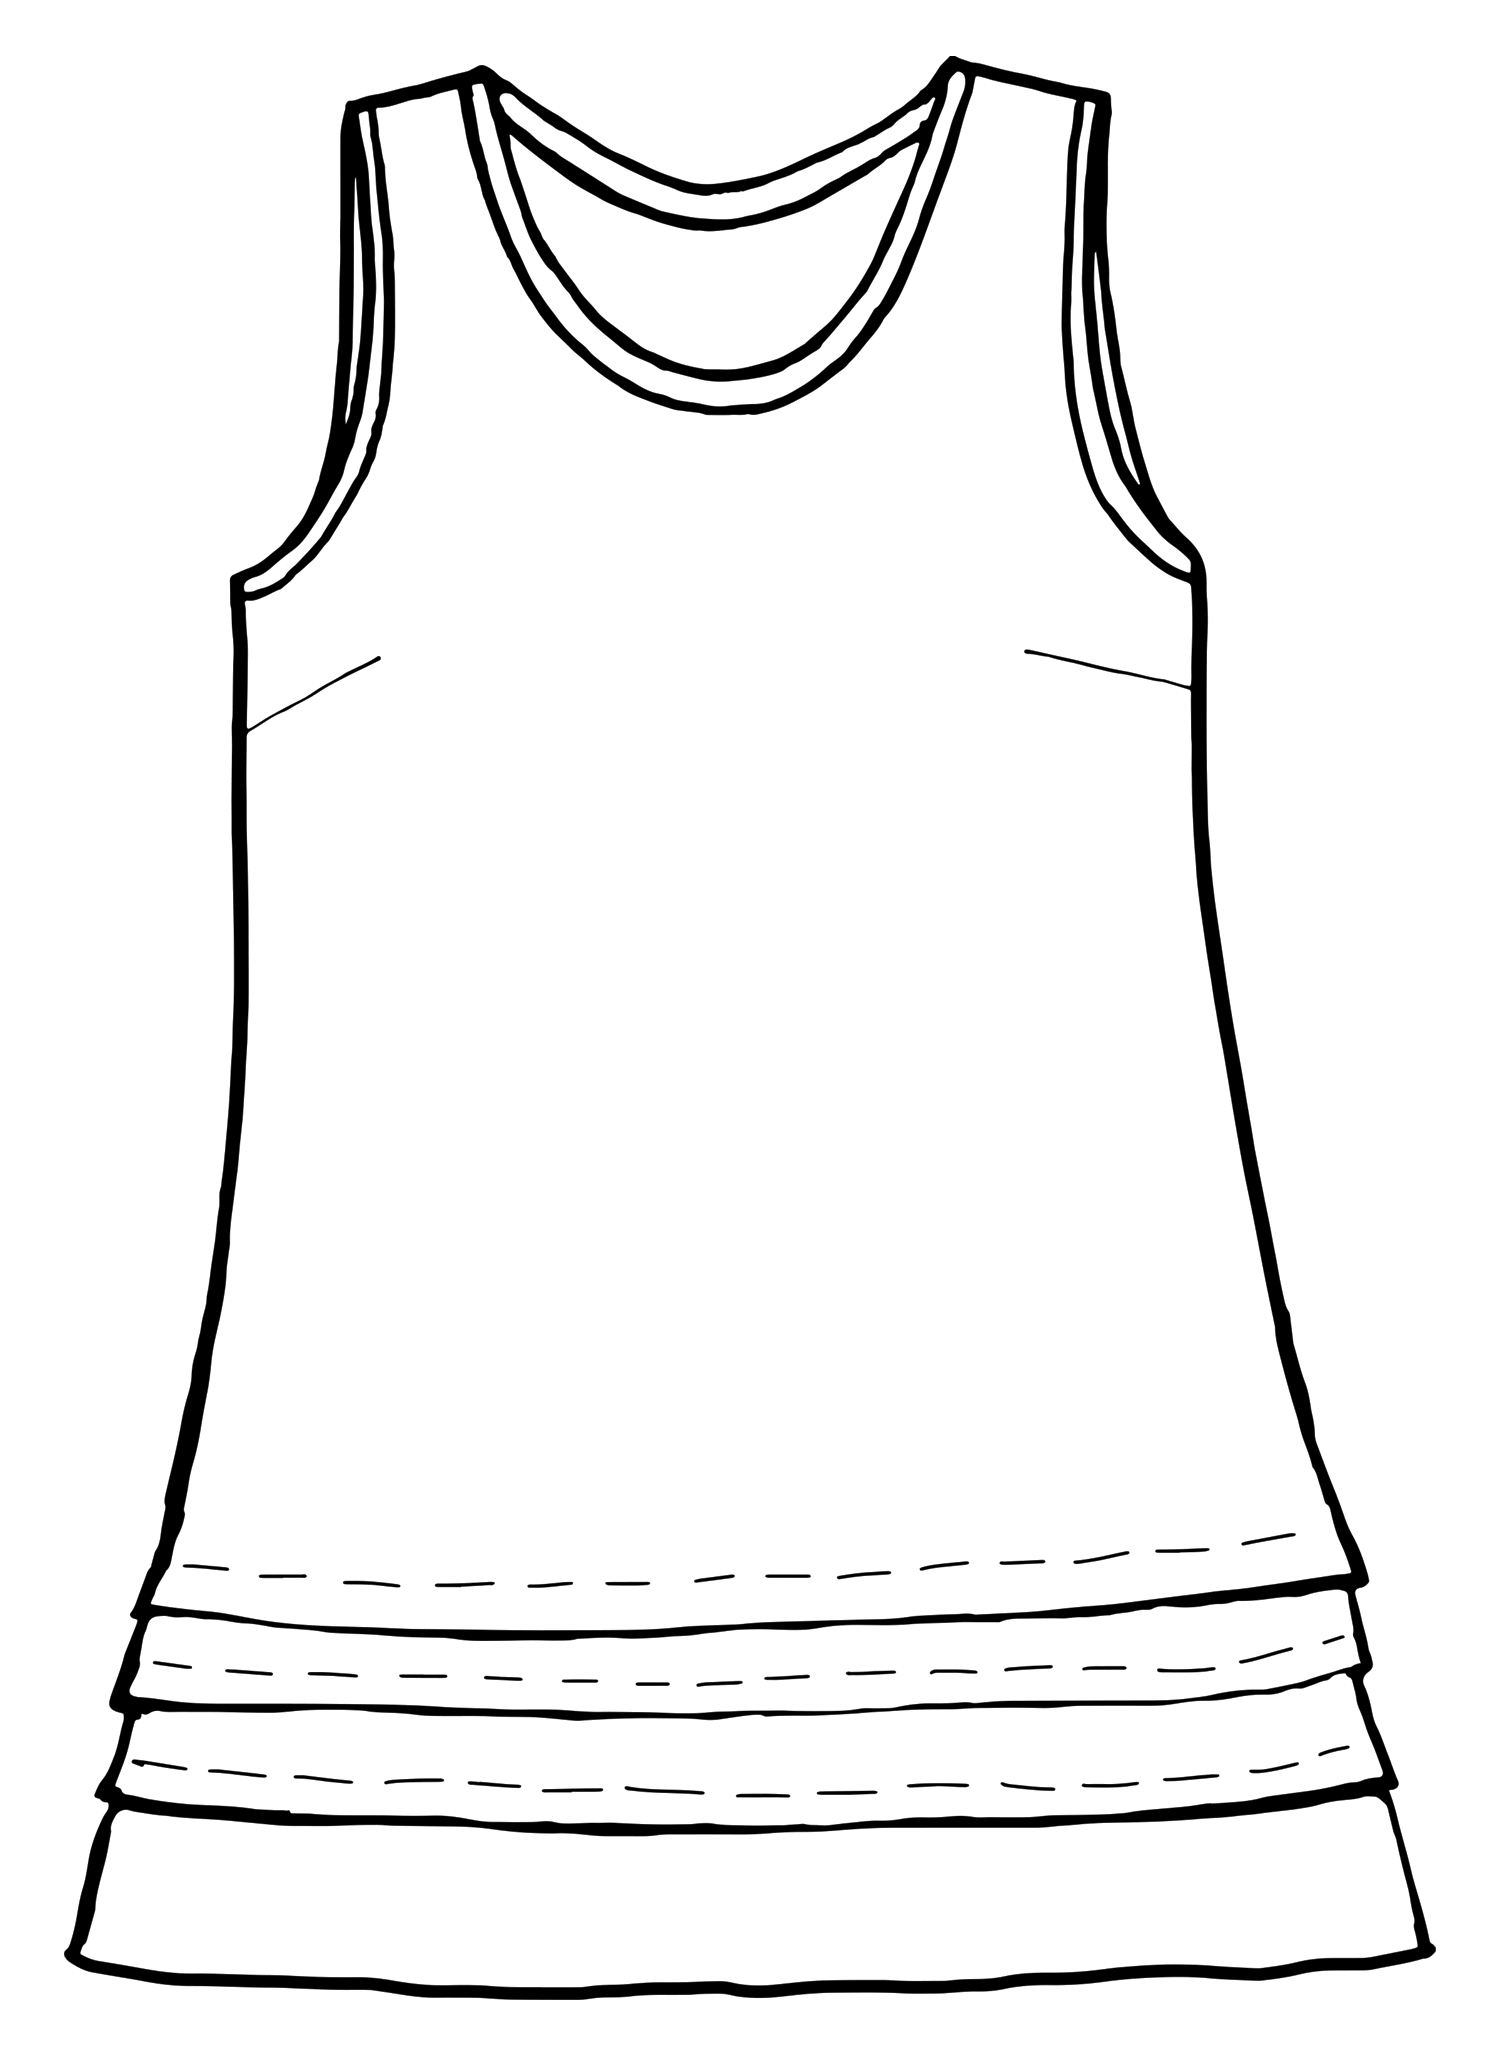 Tuck Tunic sketch image